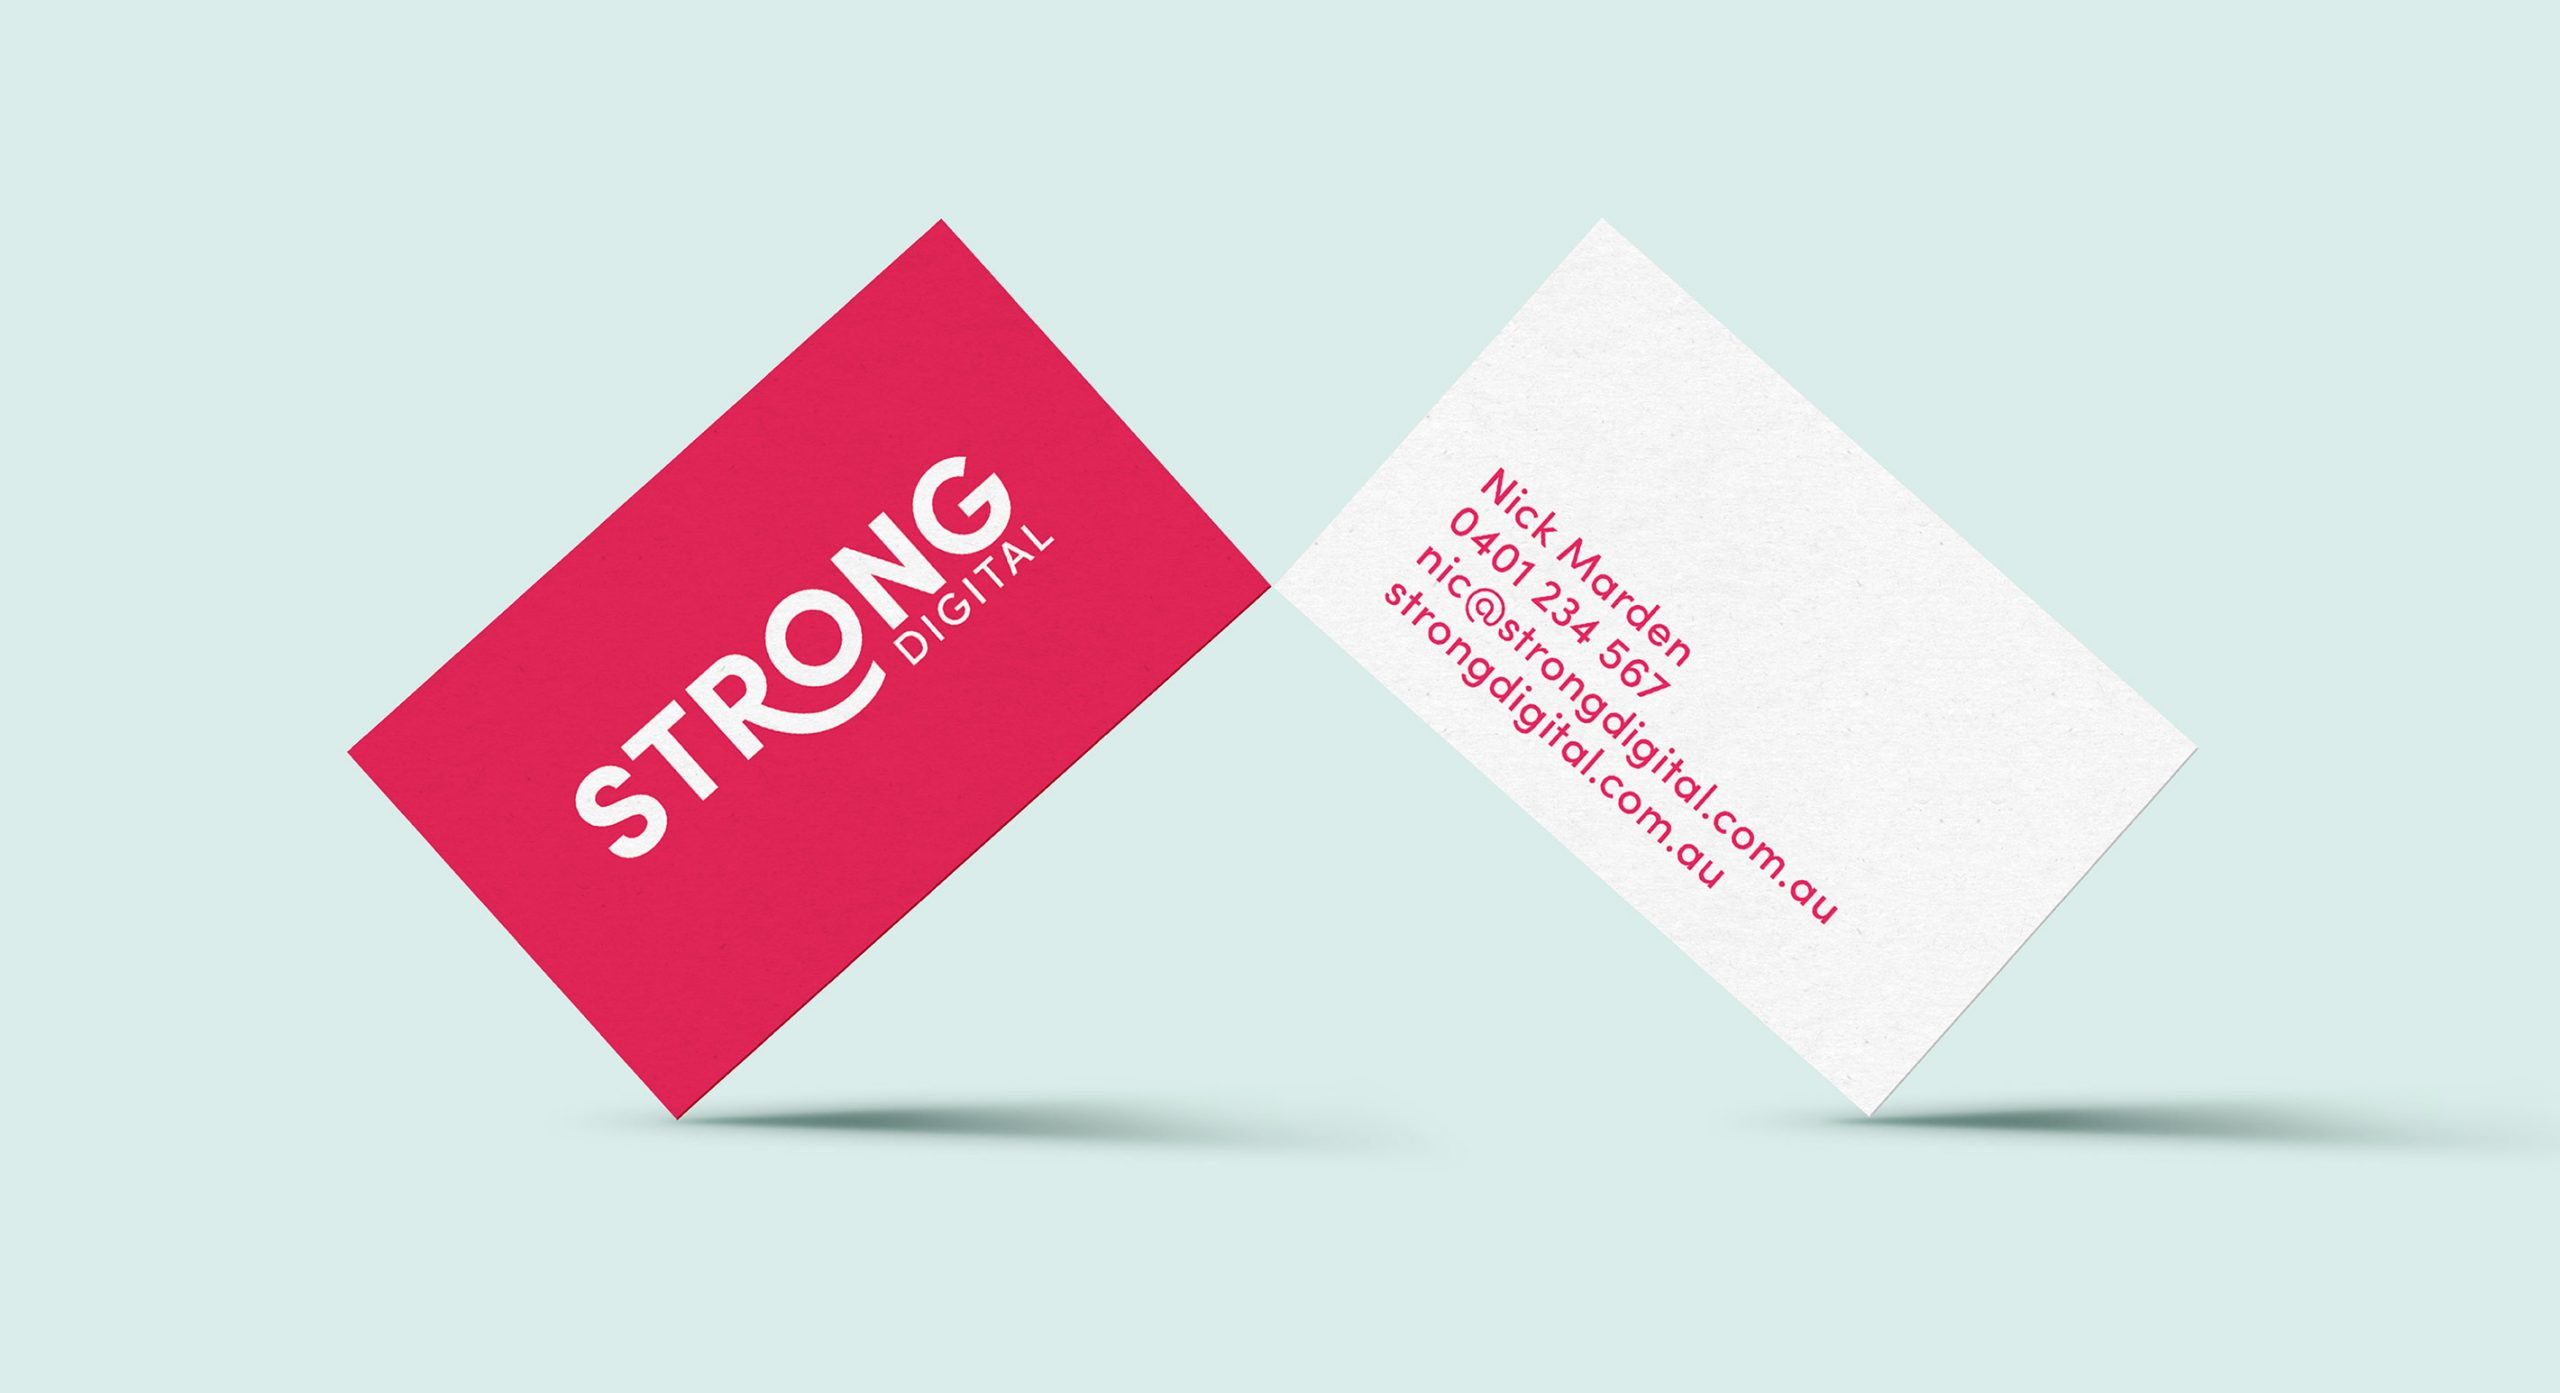 business cards for strong digital team members showing bright prink highligh colour from brand palette